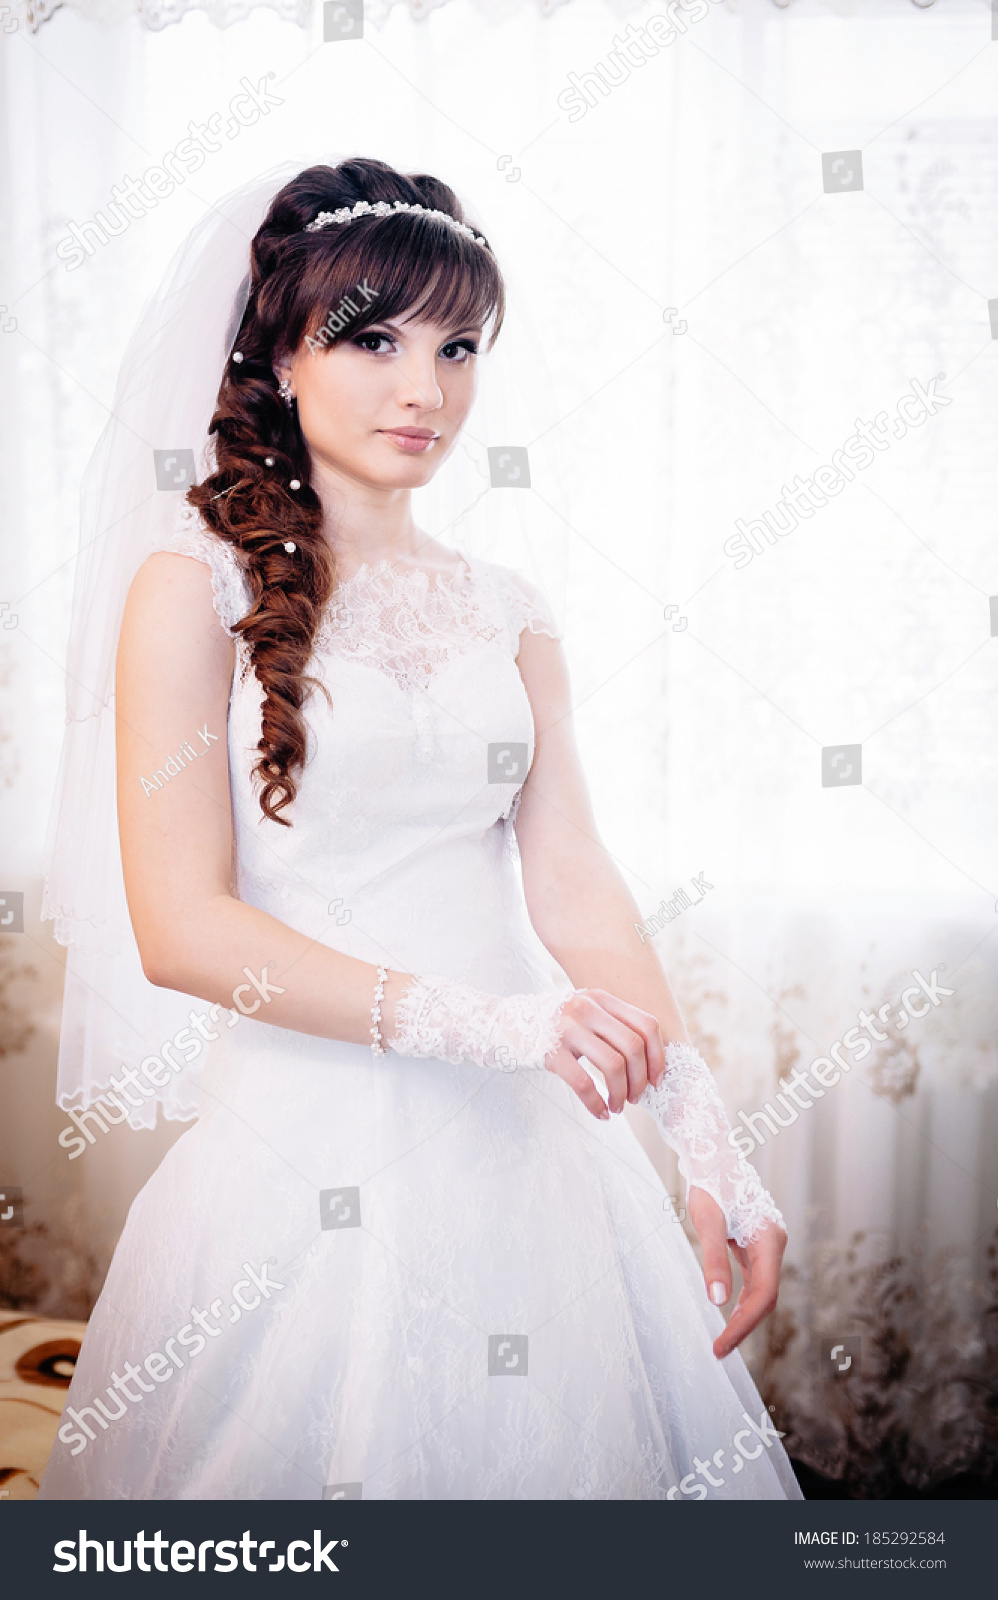 Beautiful Bride White Wedding Dress Hairstyle Stock Photo (Royalty ...